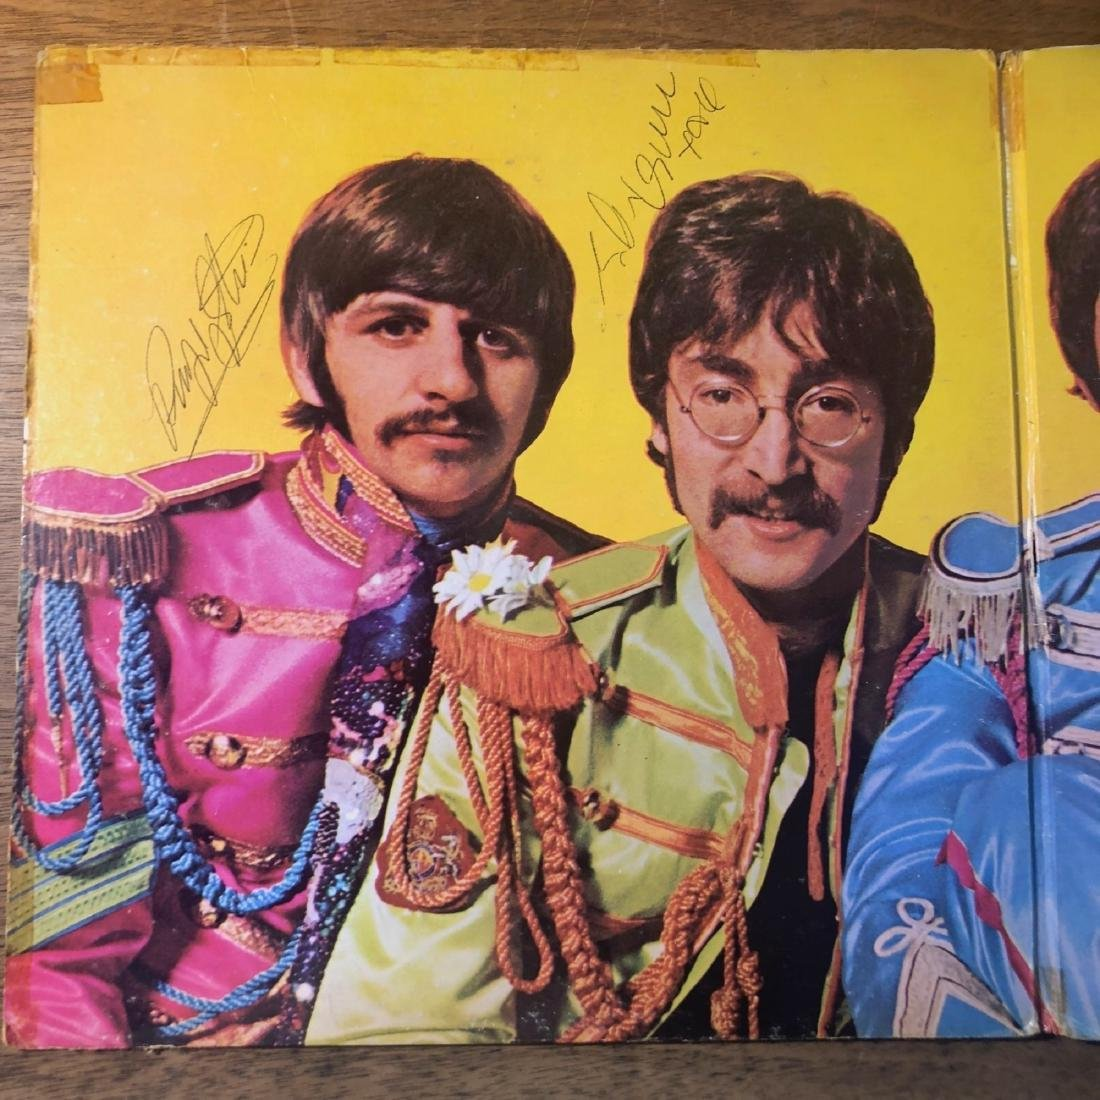 Signed Beatles Sgt Pepper Album - 2